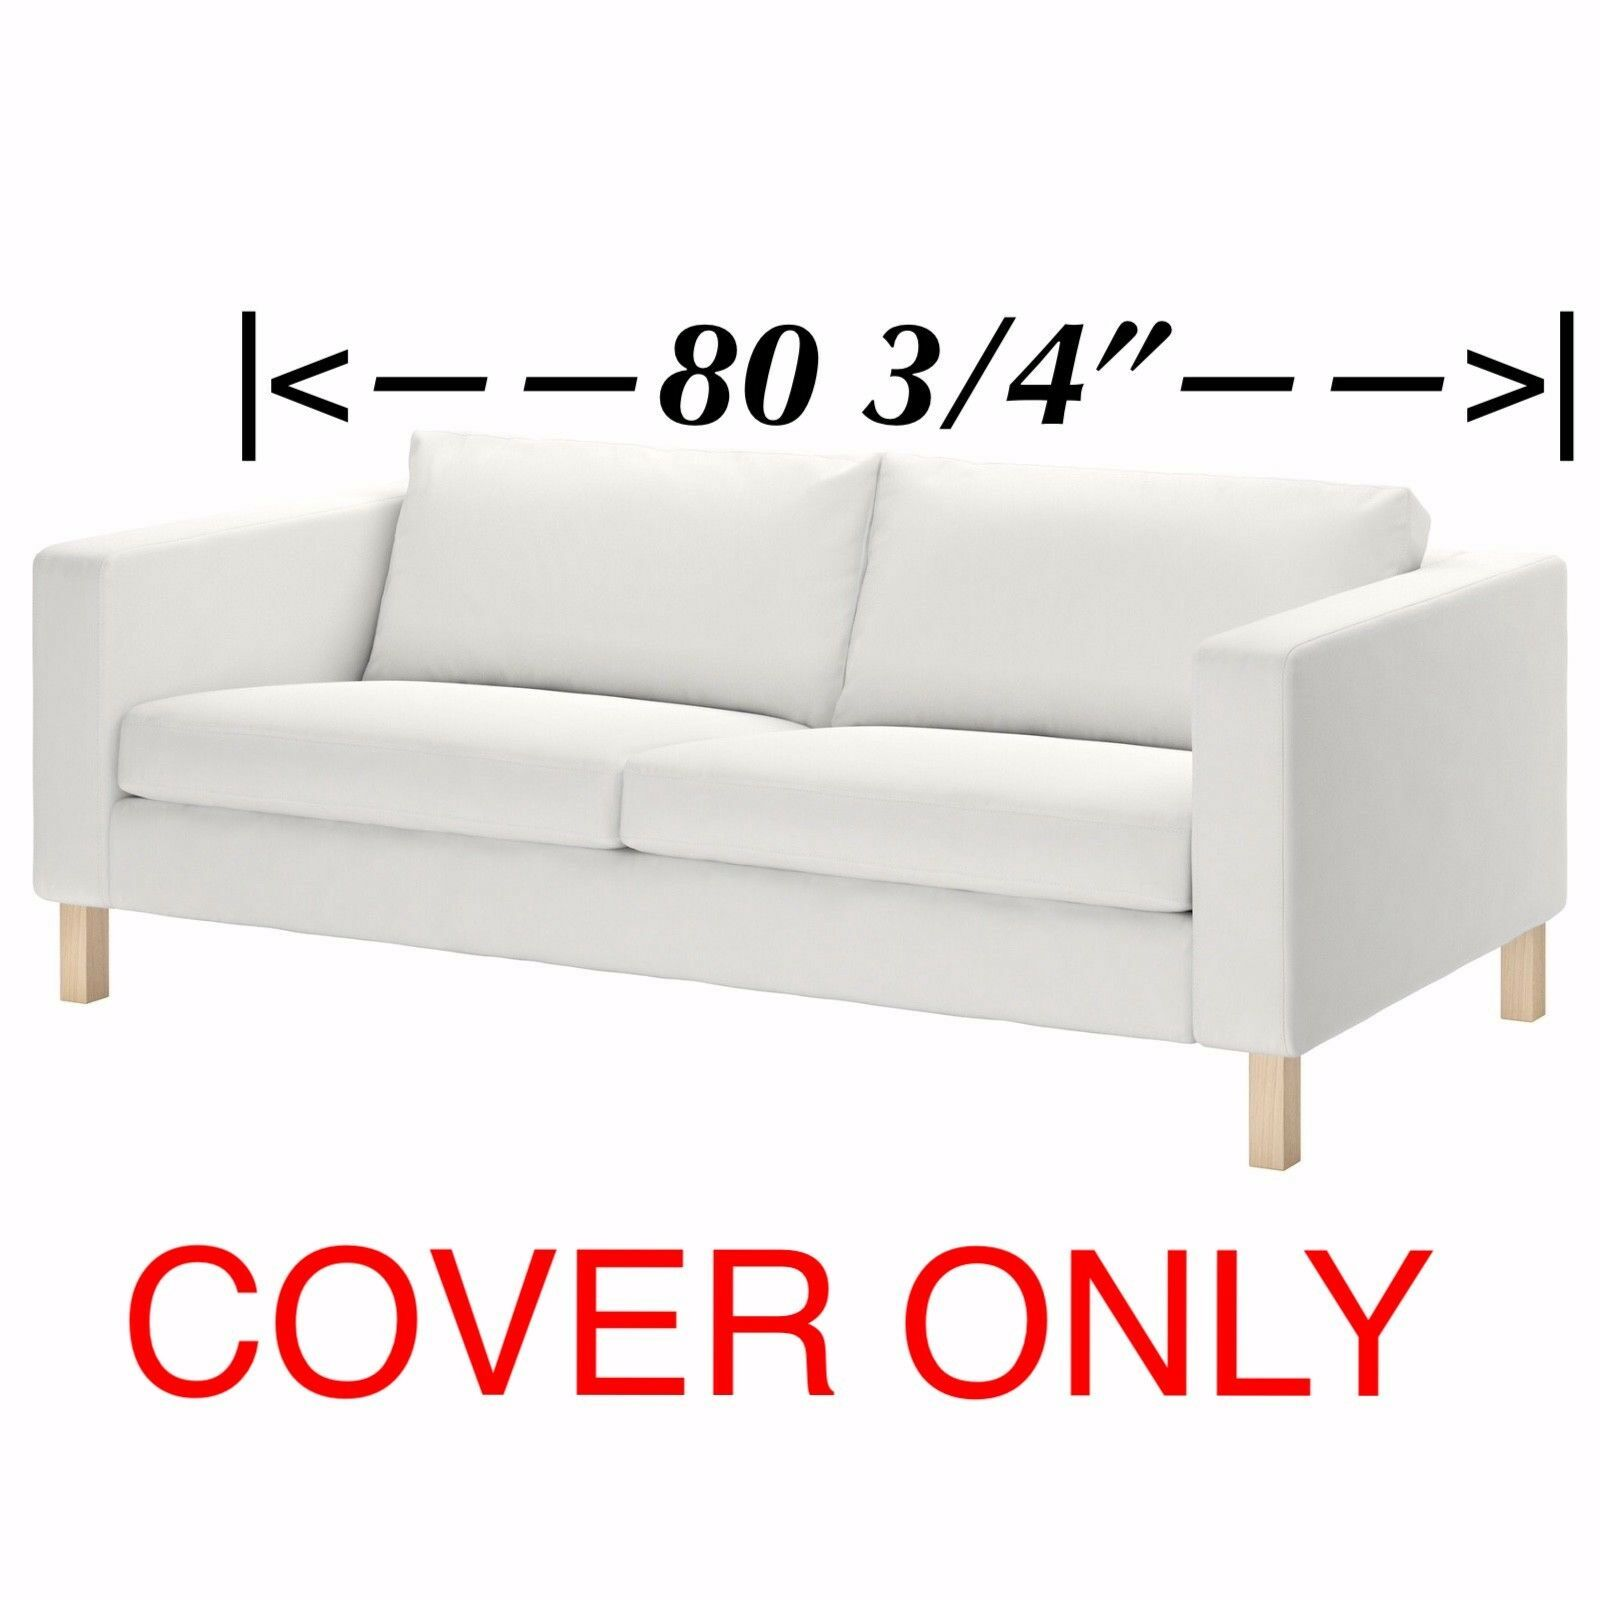 Astonishing Ikea Cover For Karlstad Sofa 80 3 4Width Slipcover Short Links Chair Design For Home Short Linksinfo